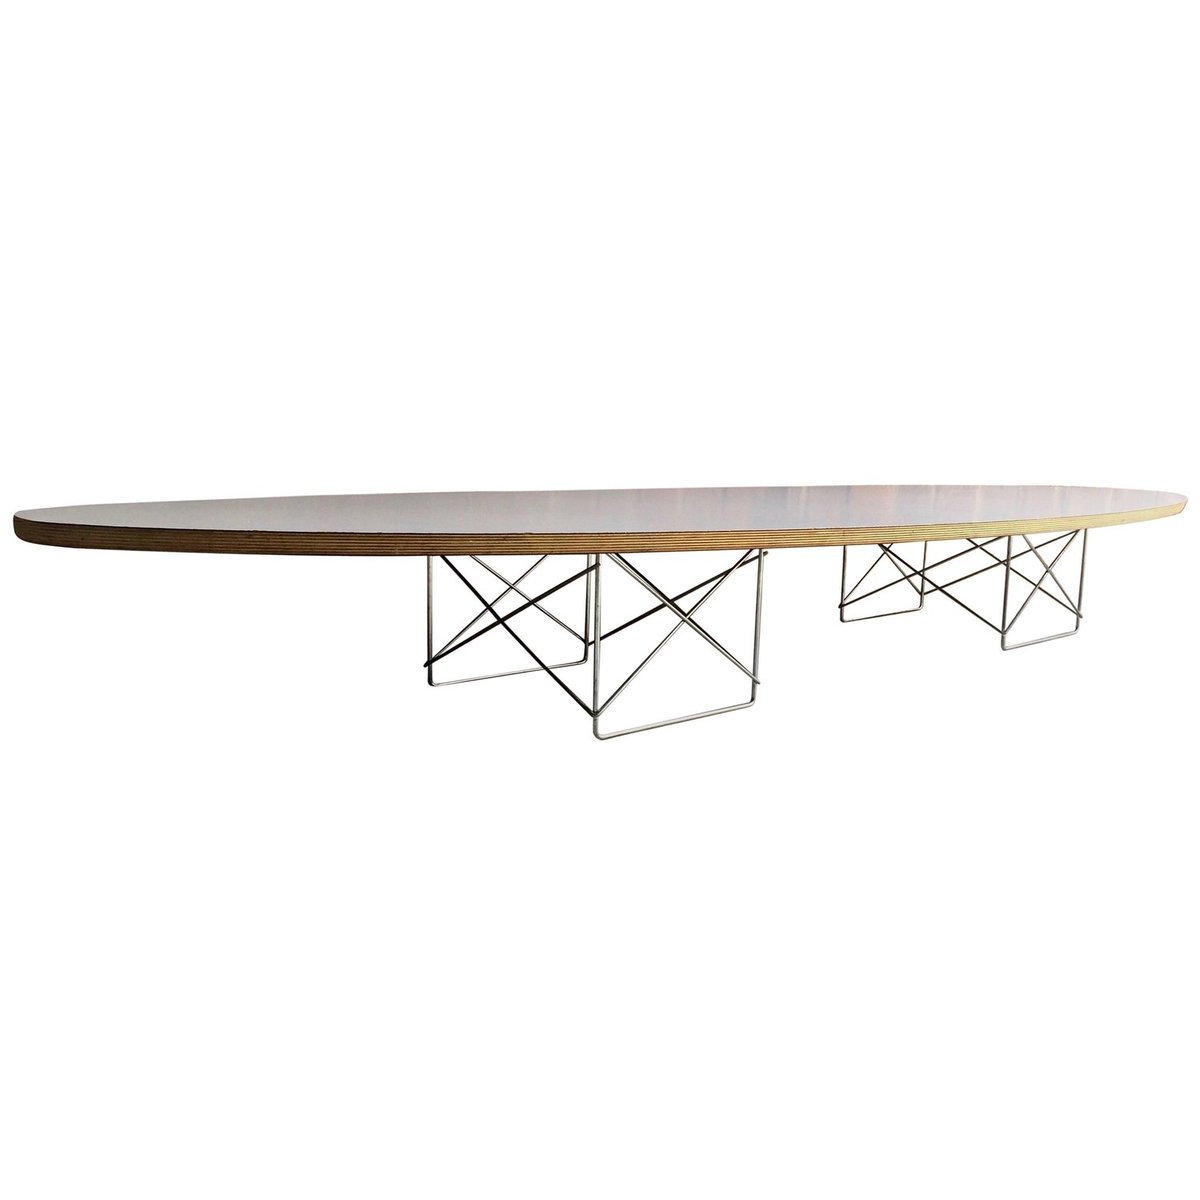 vintage elliptical coffee table by charles ray eames for herman miller 1980s for sale at pamono. Black Bedroom Furniture Sets. Home Design Ideas